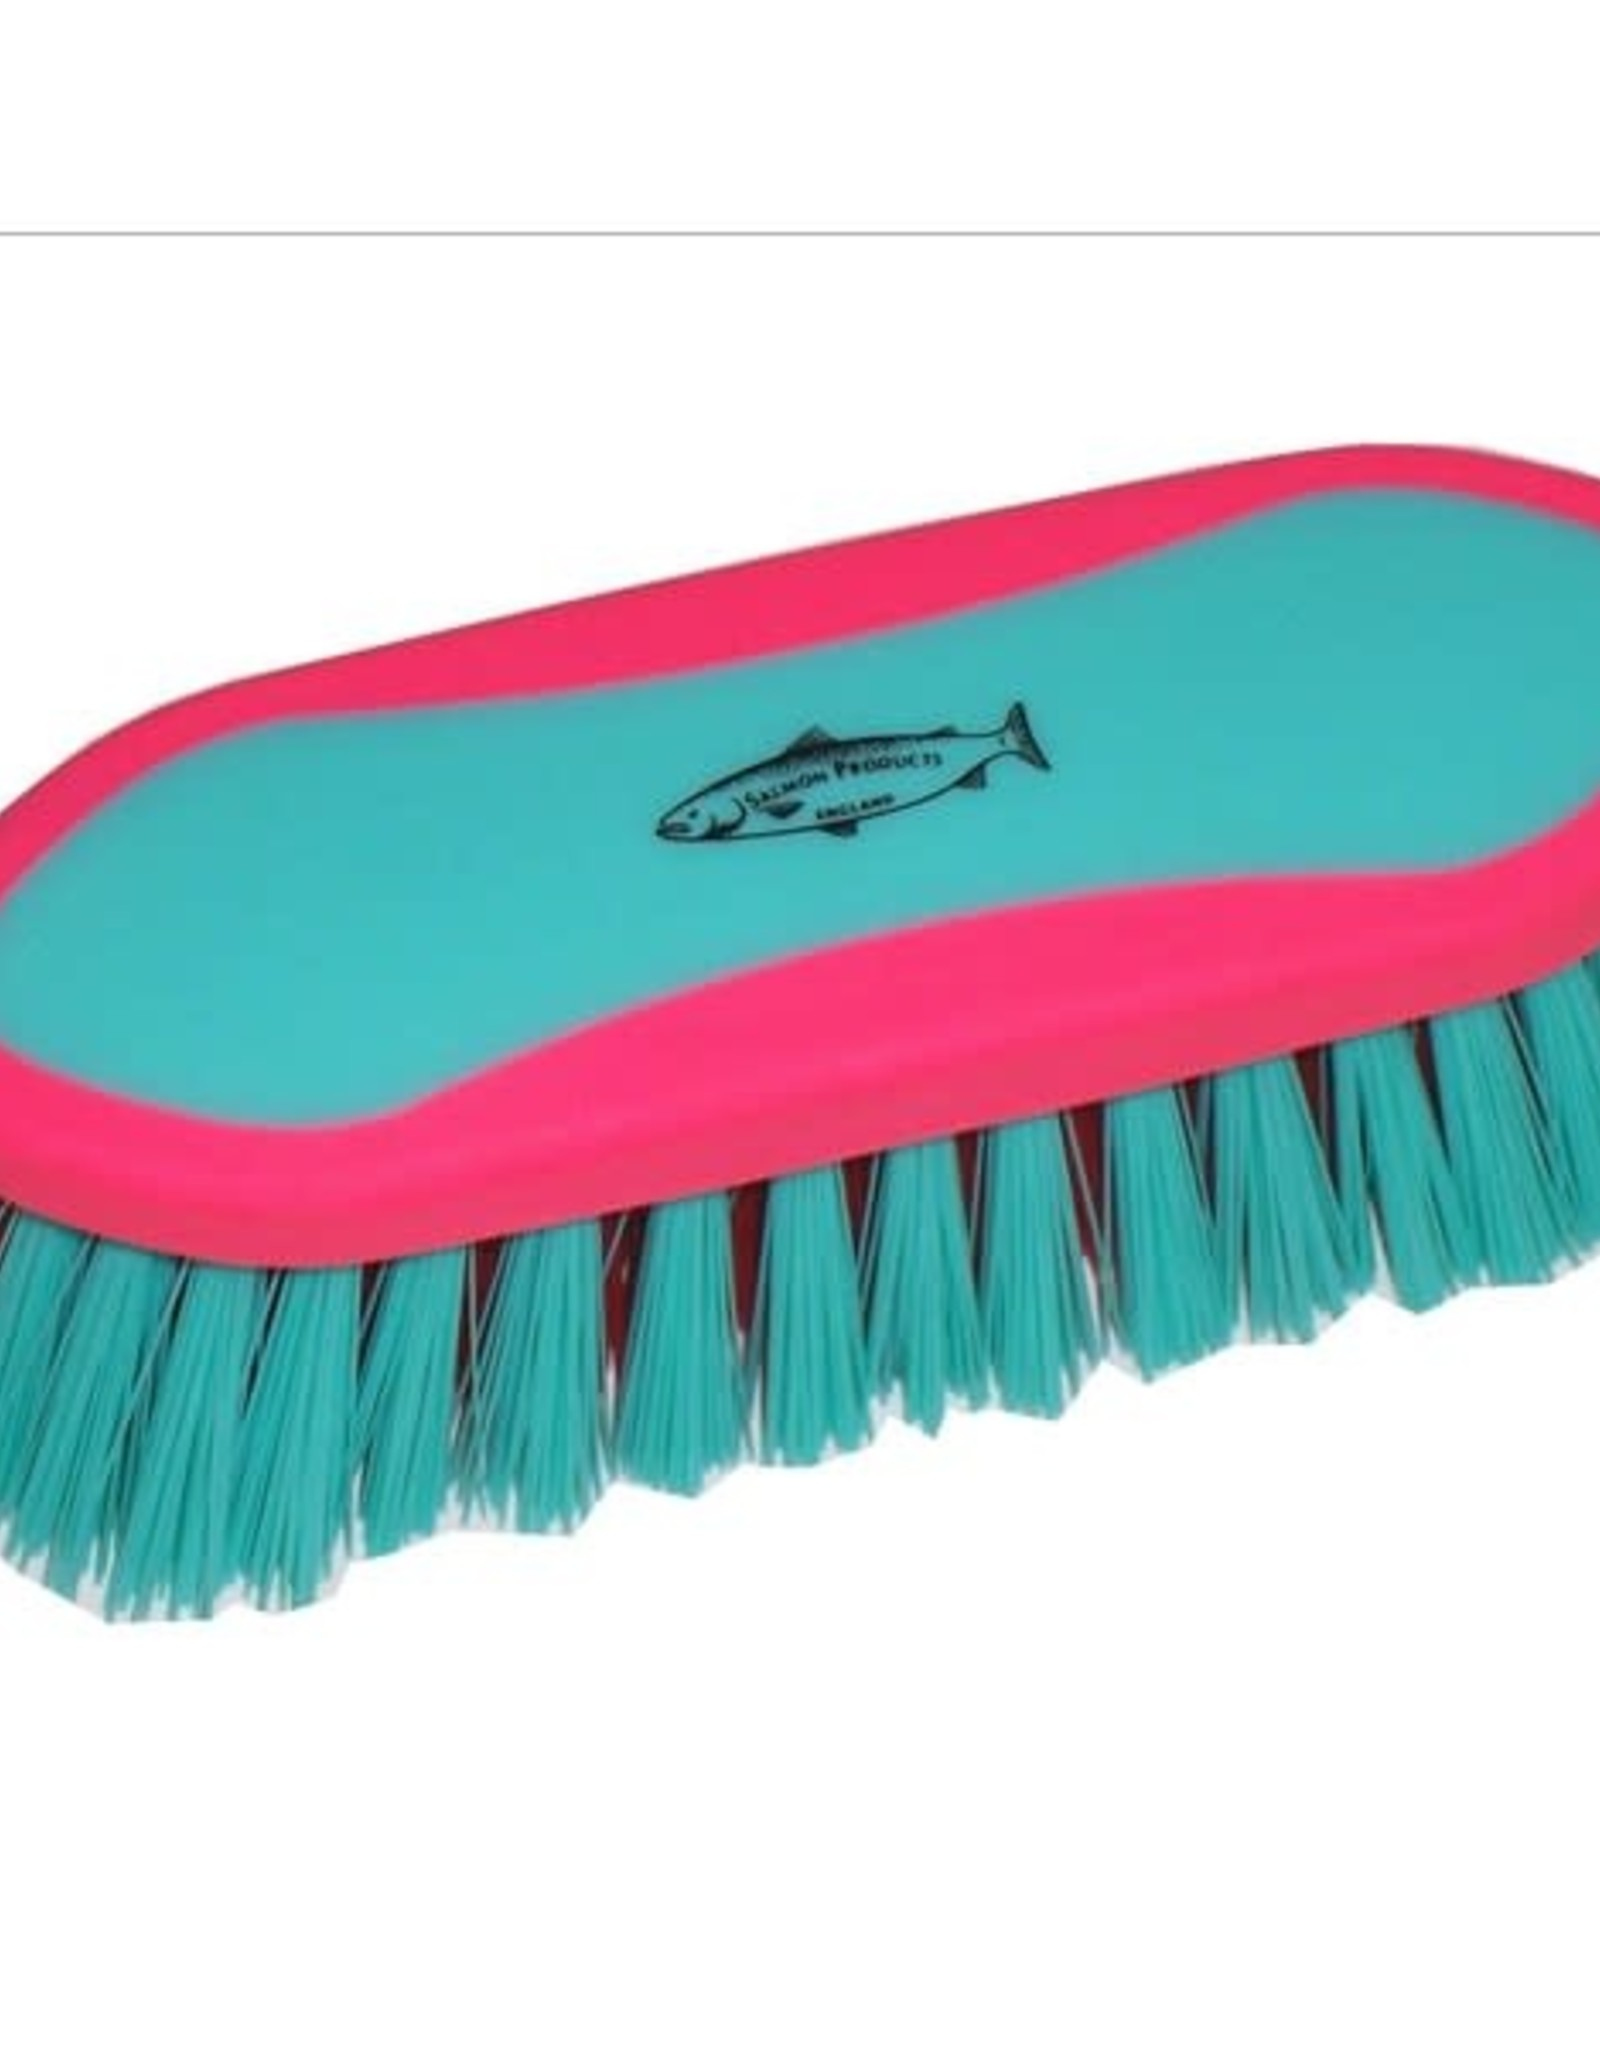 "6.75"" Grippee Dandy Brush - Assorted Colours"